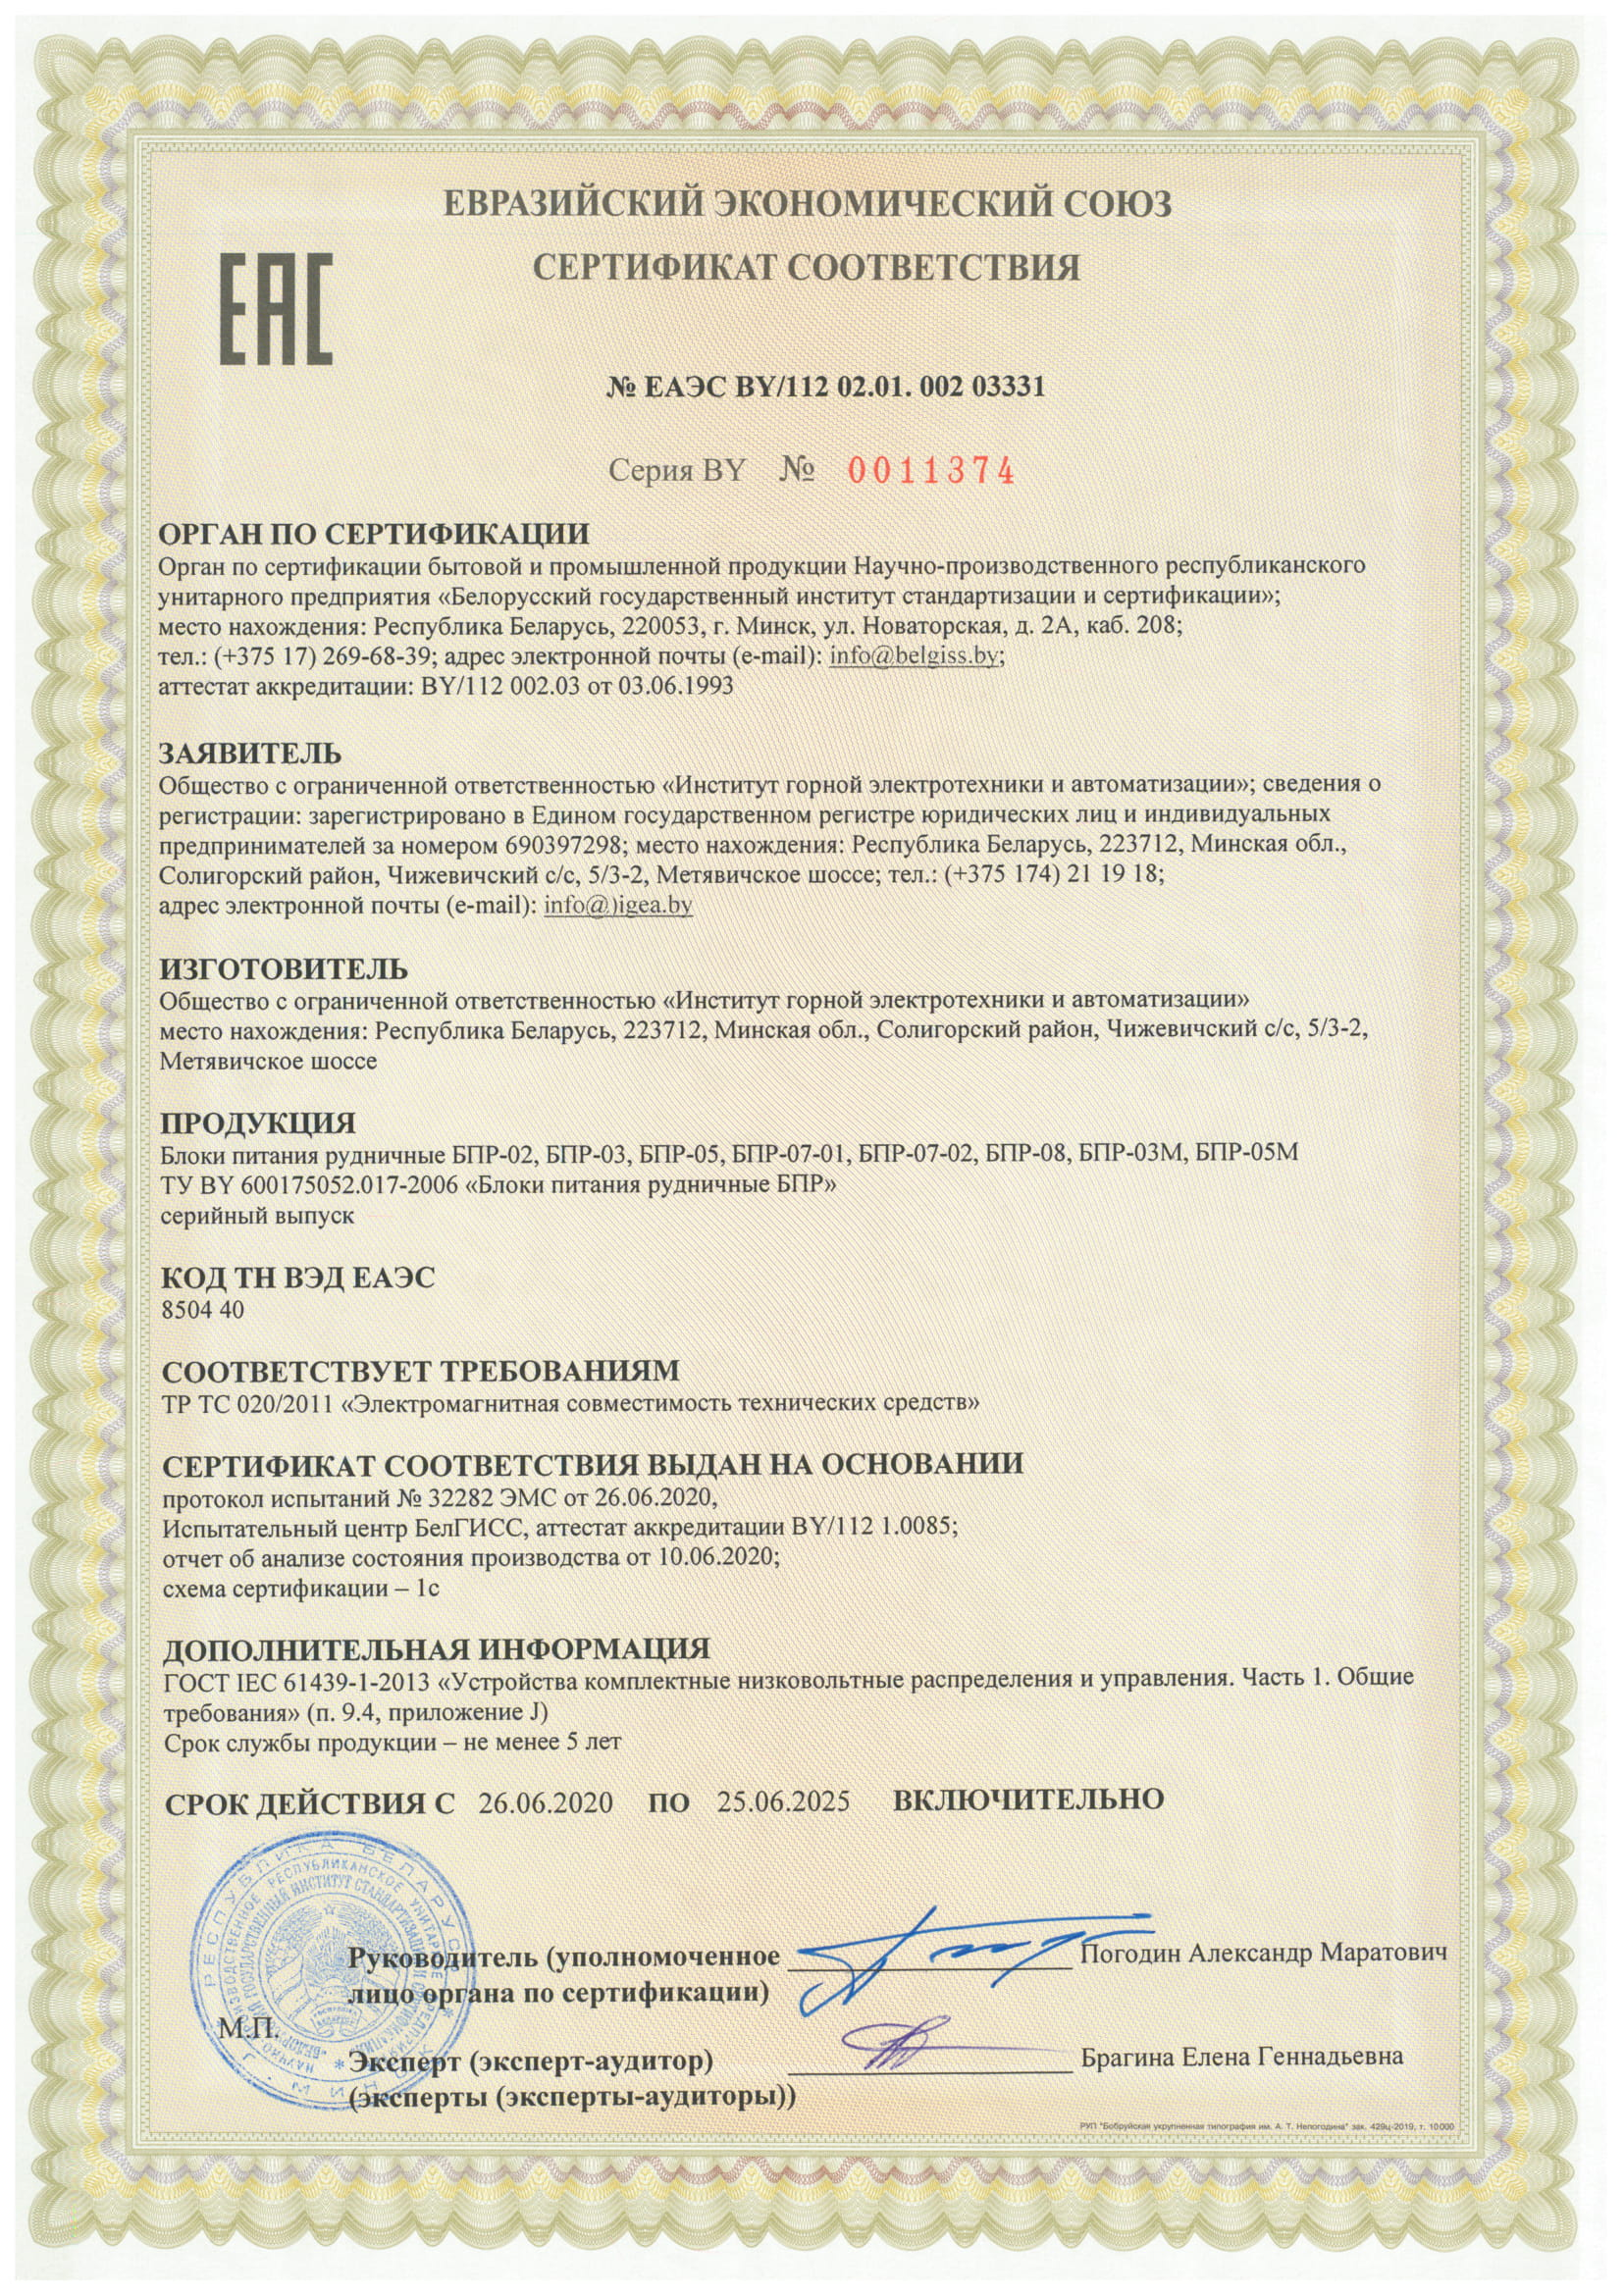 Certificate of conformity to CU TR 020/2011 - No.ЕАЭС BY/112 02.01.  002 03331 valid till 25.06.2025